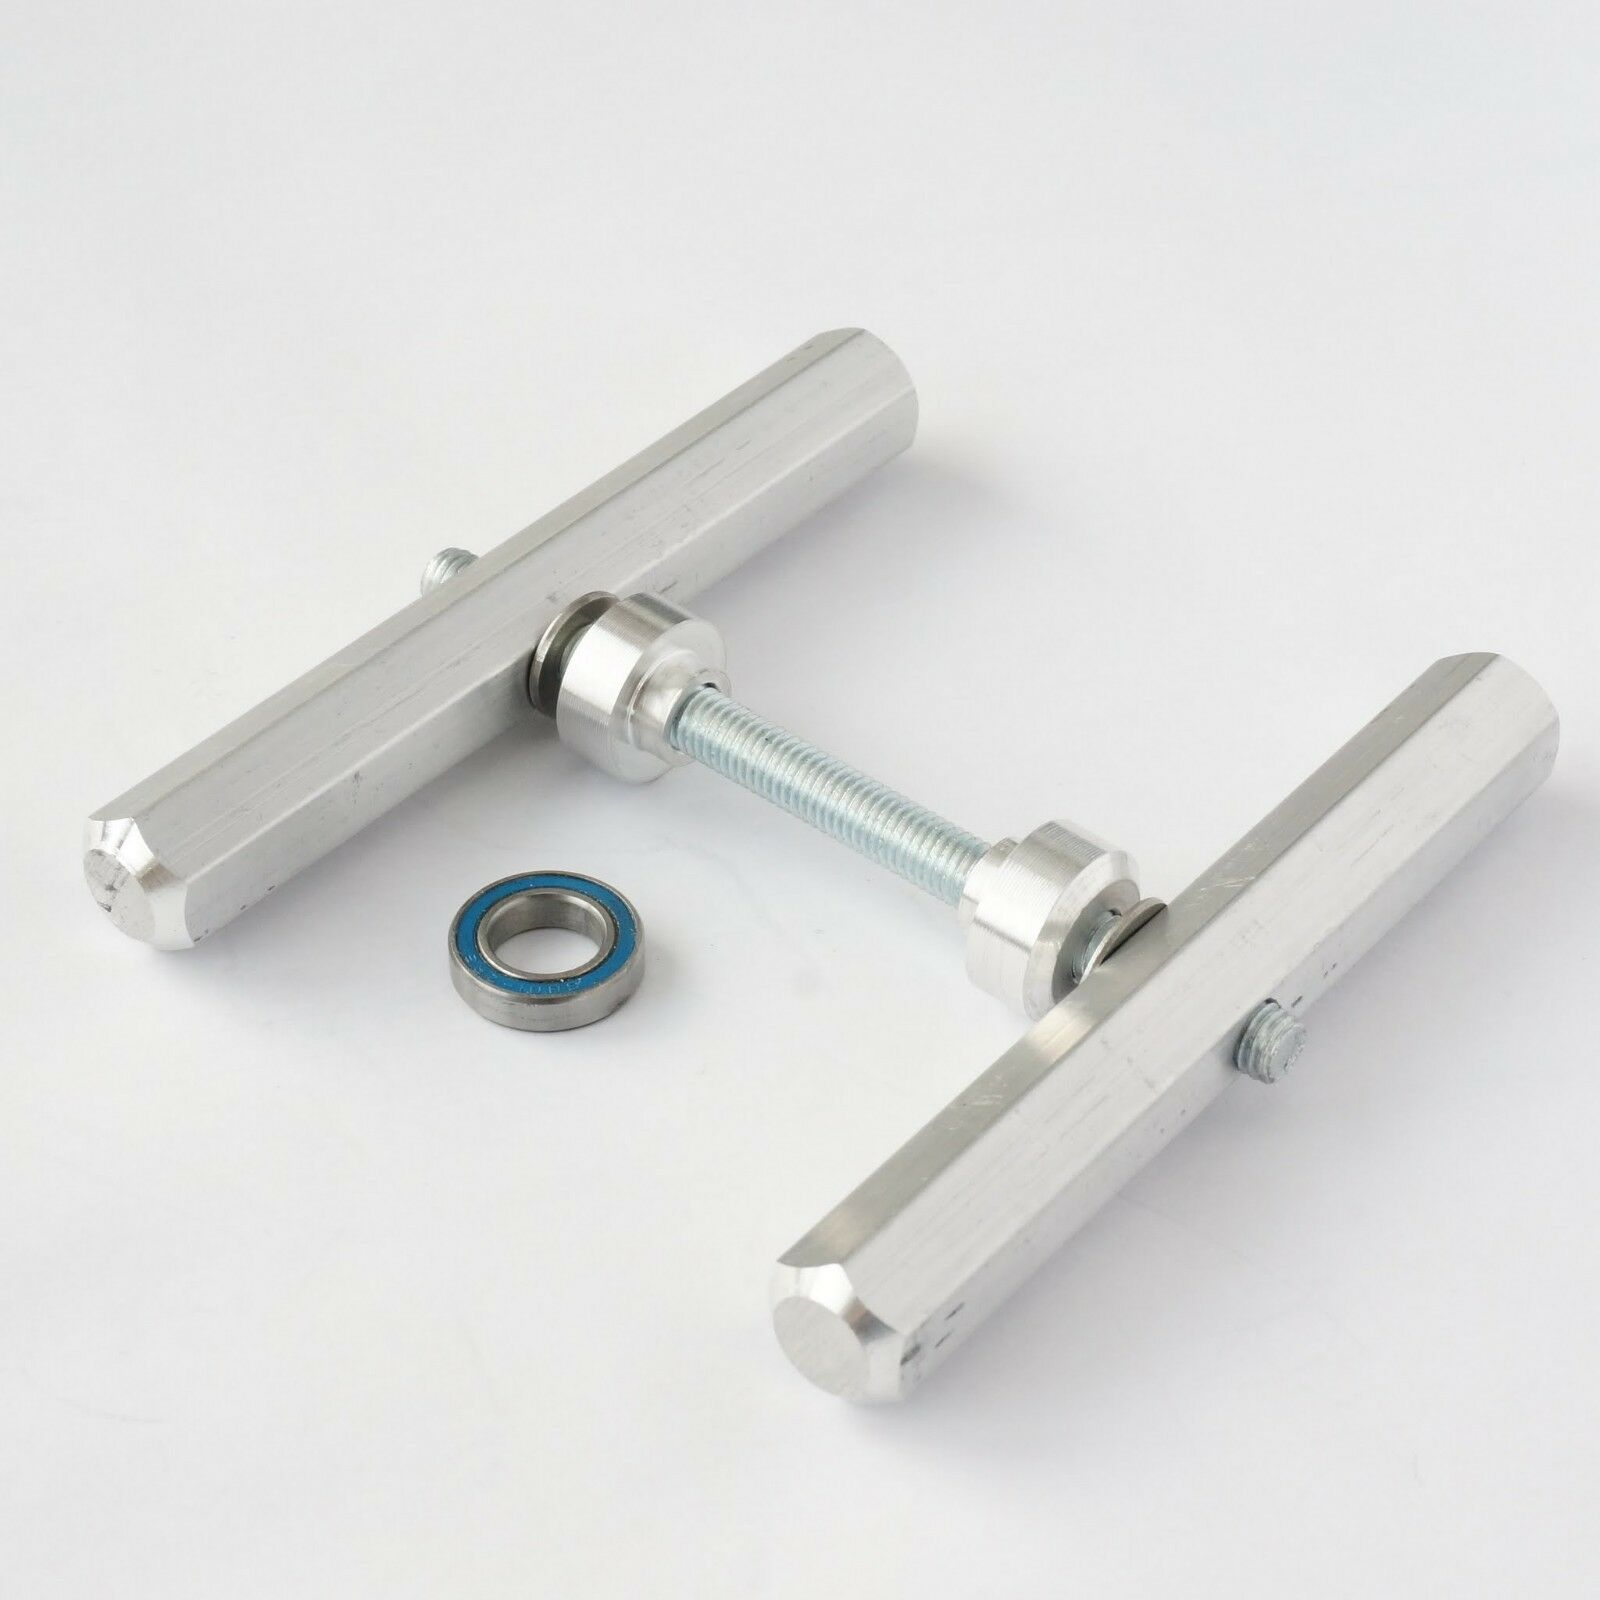 Bearing Press Press Bearing for Trek Bike Frames - Slash, etc e8f7fc